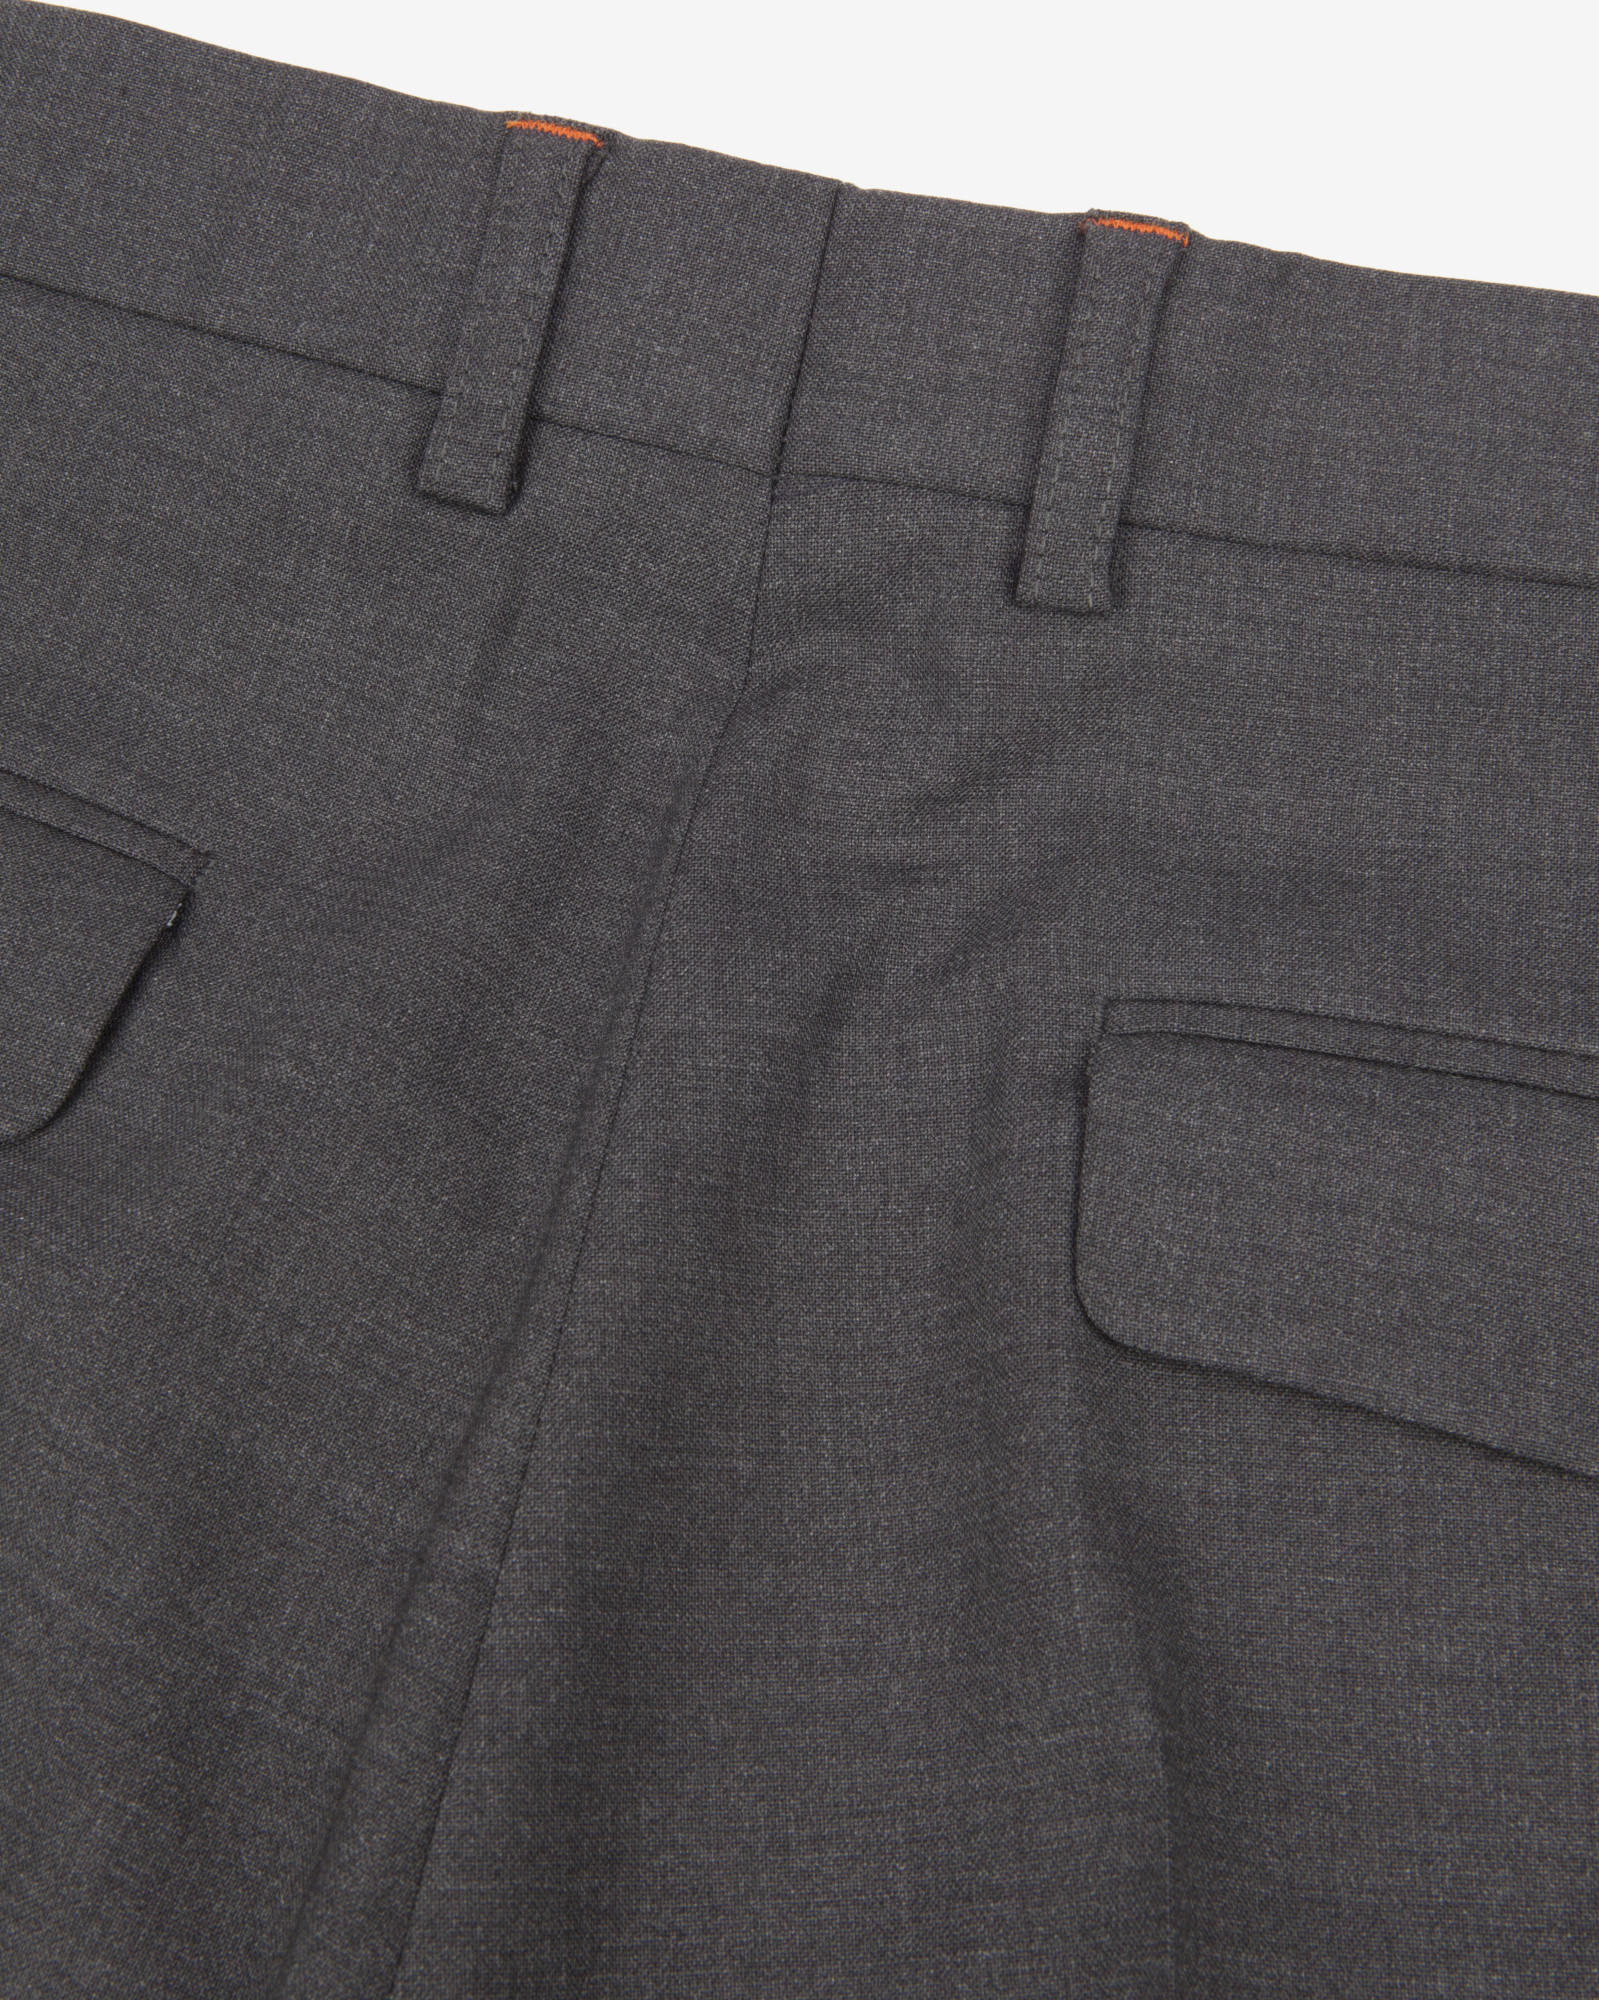 Suit Cycling Commuter Trousers The